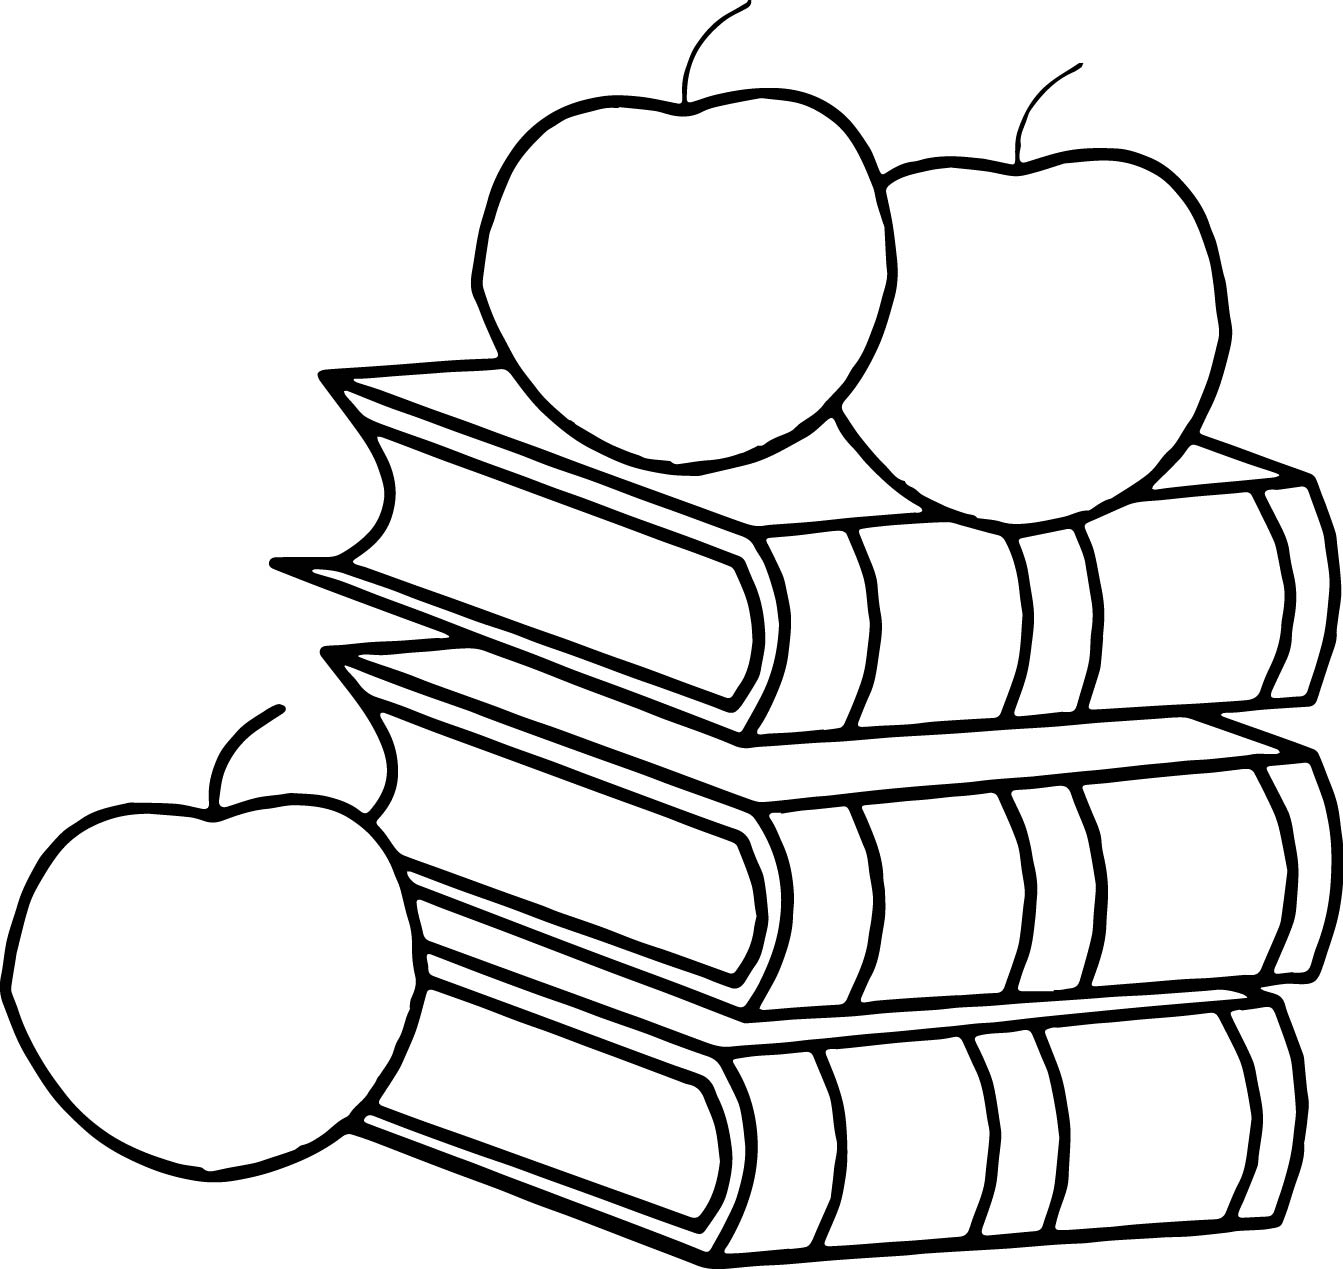 3rd Grade Coloring Pages